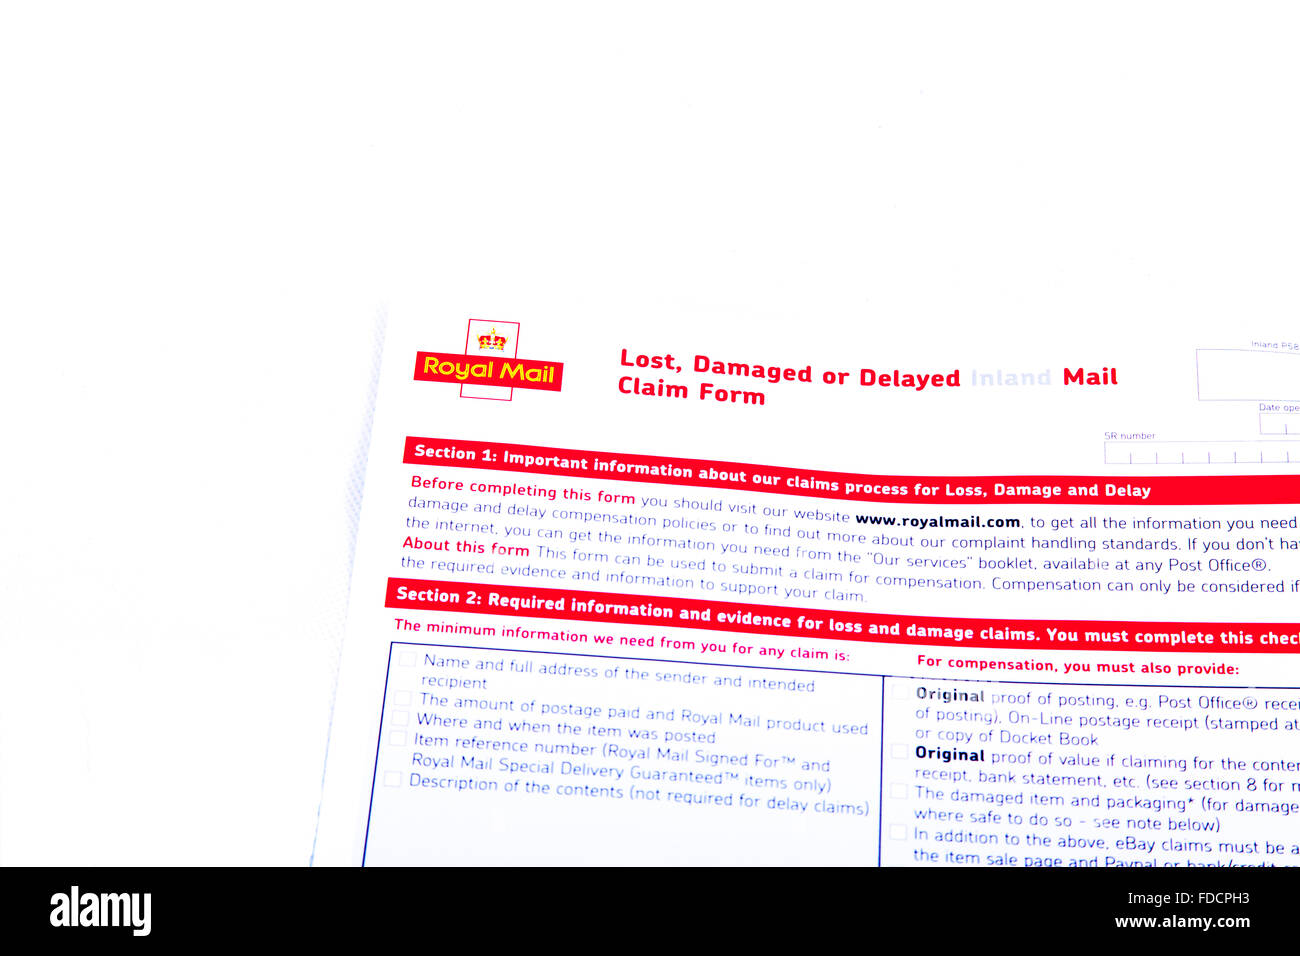 Royal mail lost damaged or delayed claim form claims post posted postage loss losses cut out cutout white background - Stock Image